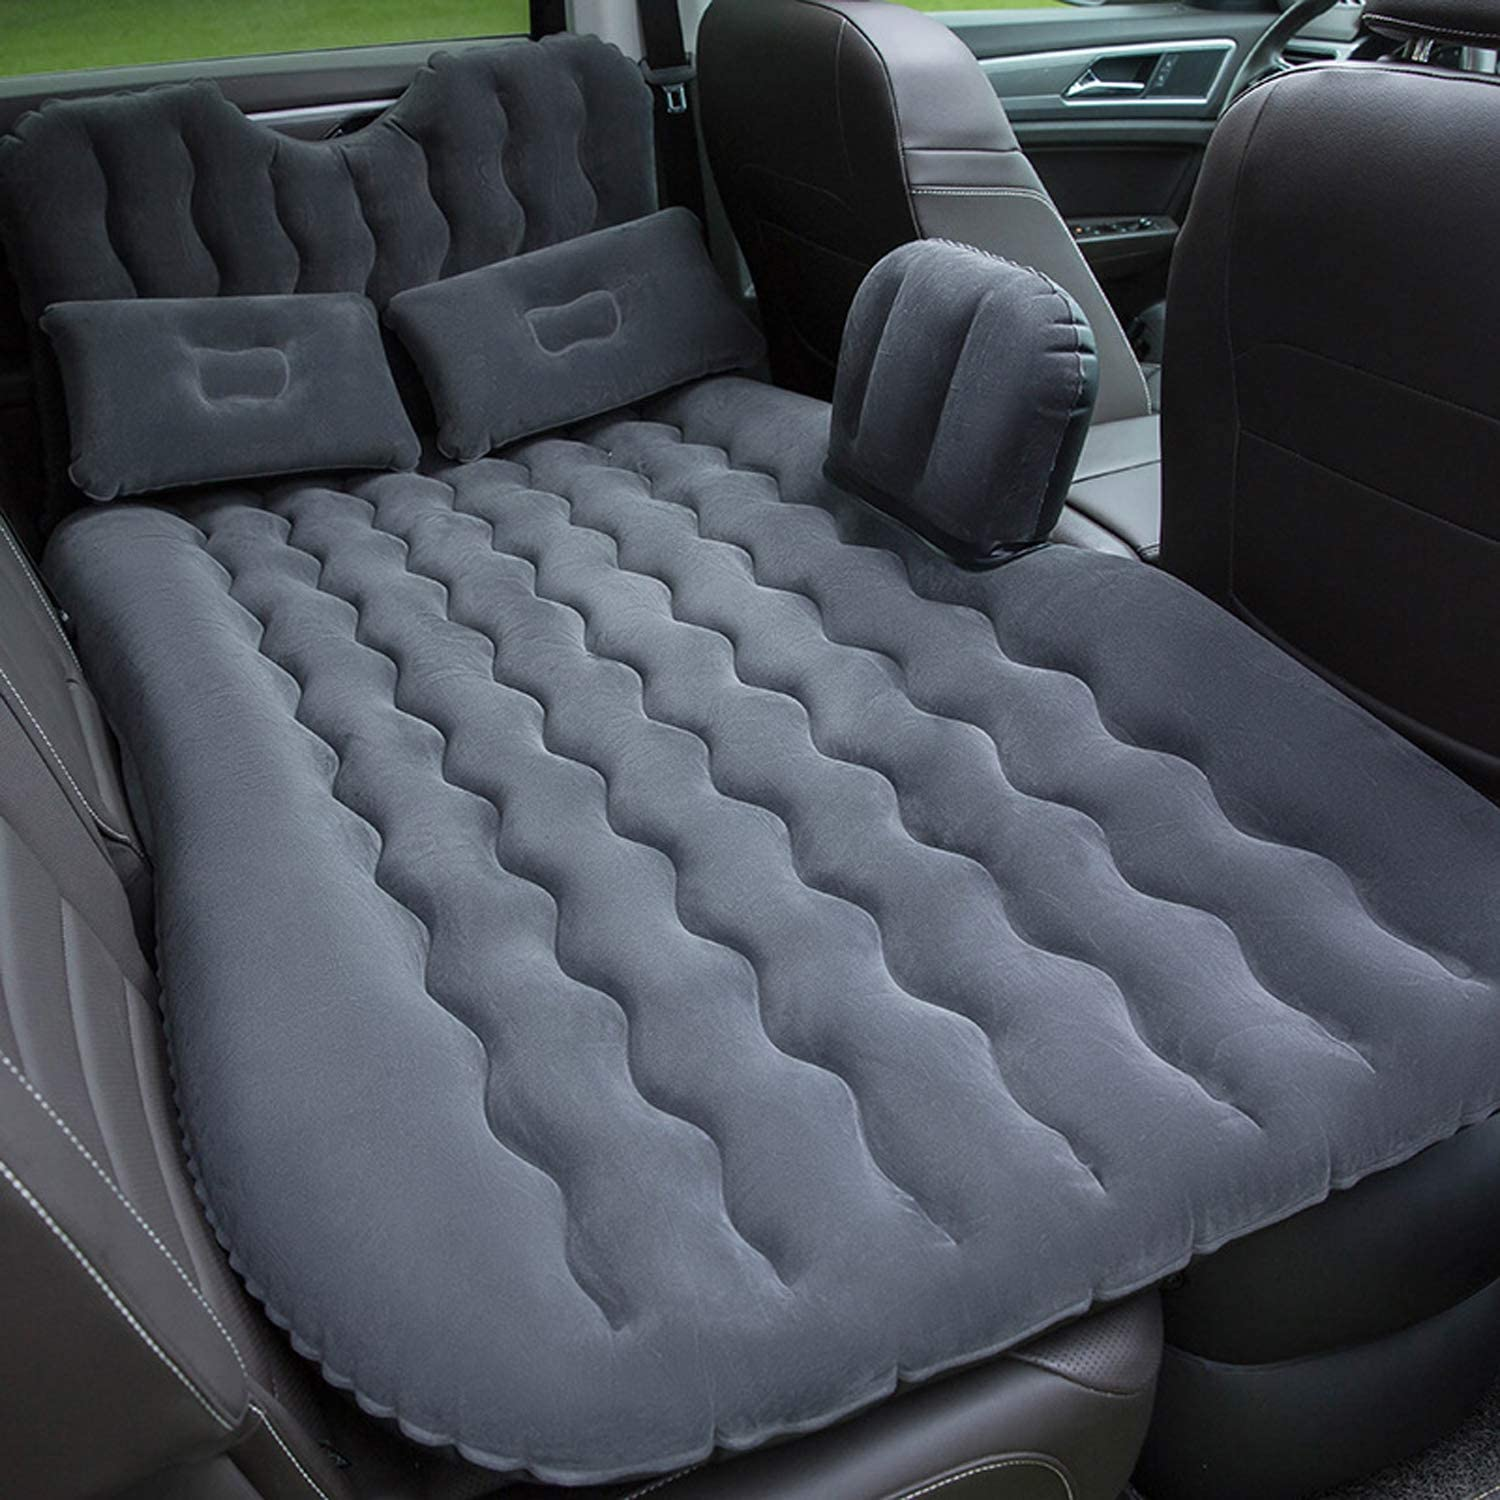 USA Inflatable Travel Camping Car Seat Sleep Rest Mattress Air Bed with Air Pump